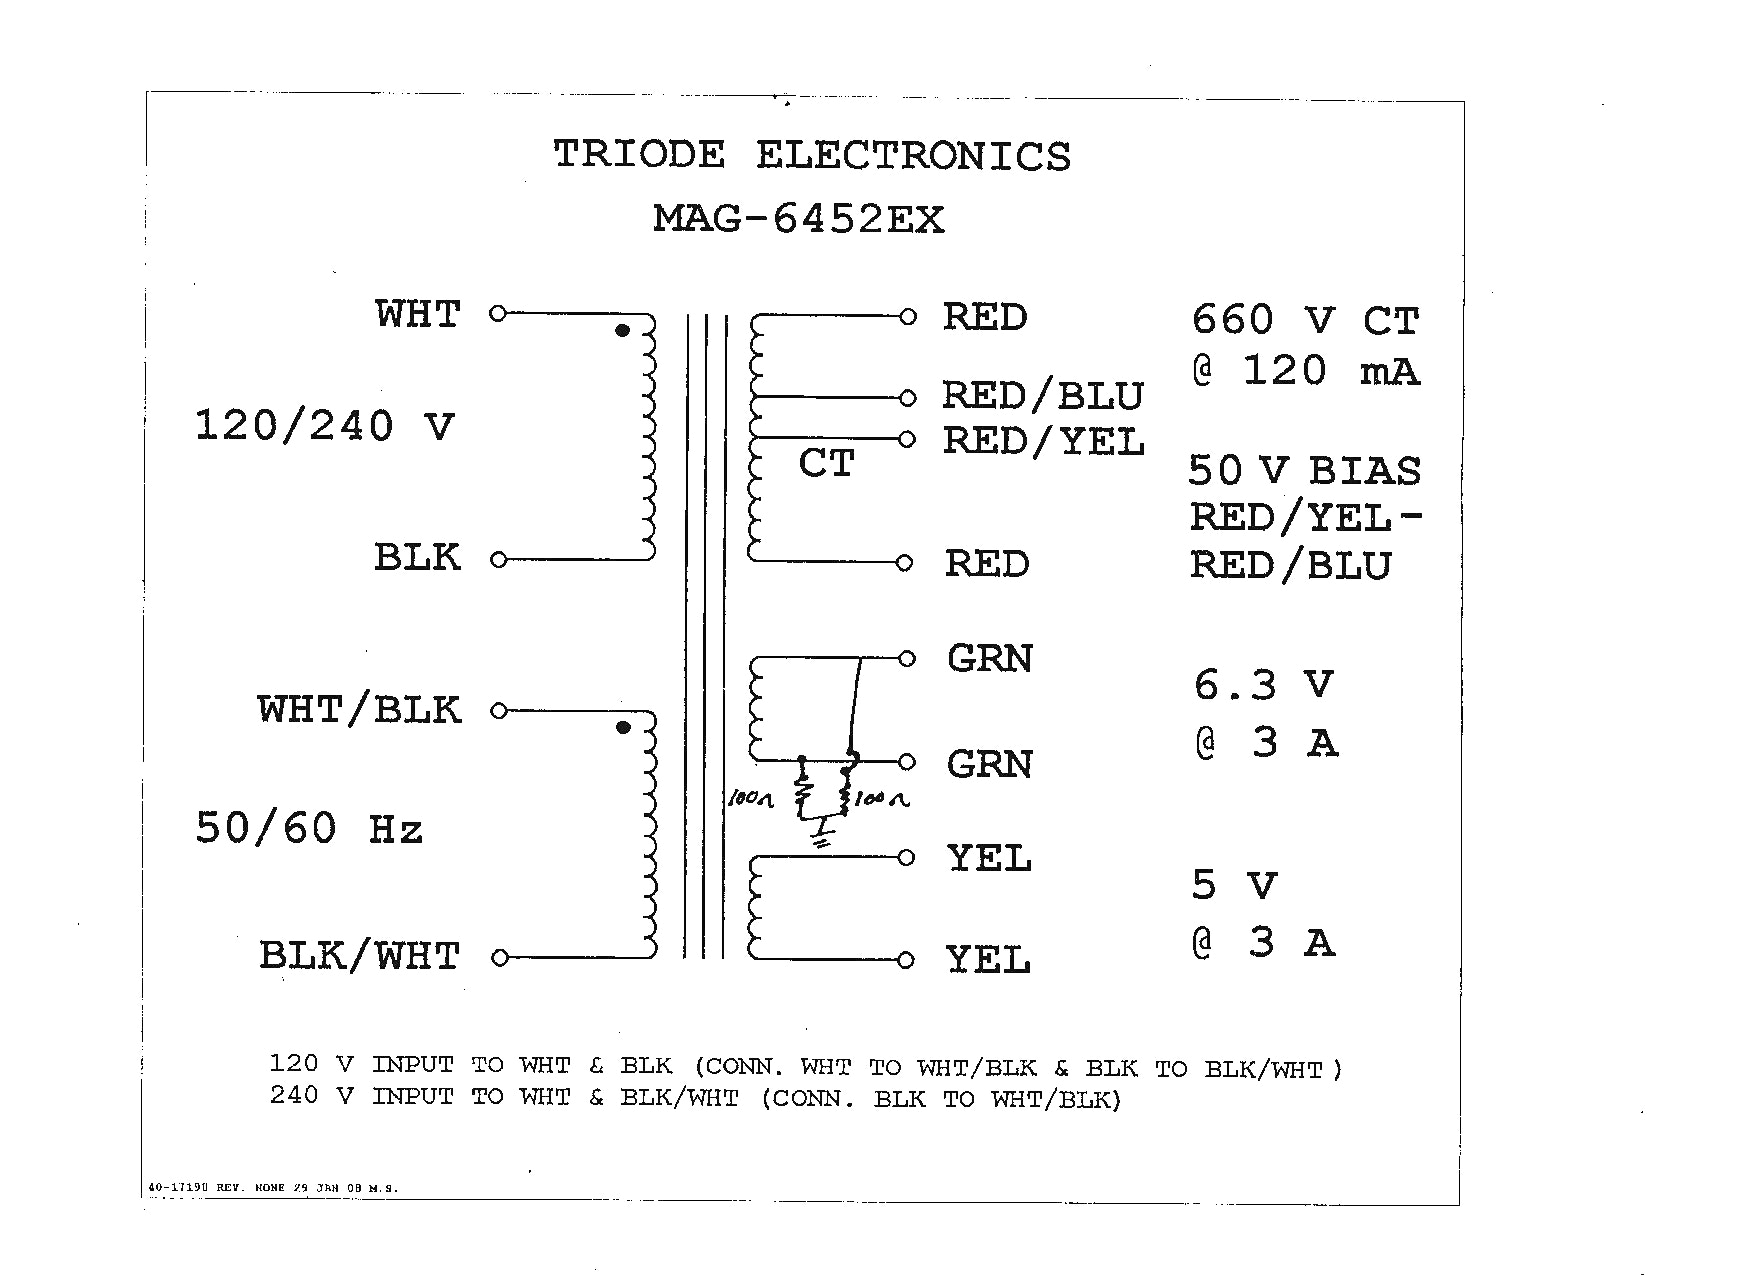 acme buck boost transformer wiring diagram Download-buck and boost transformer wiring diagram Collection Acme Transformers Wiring Diagrams 11 t 1-p